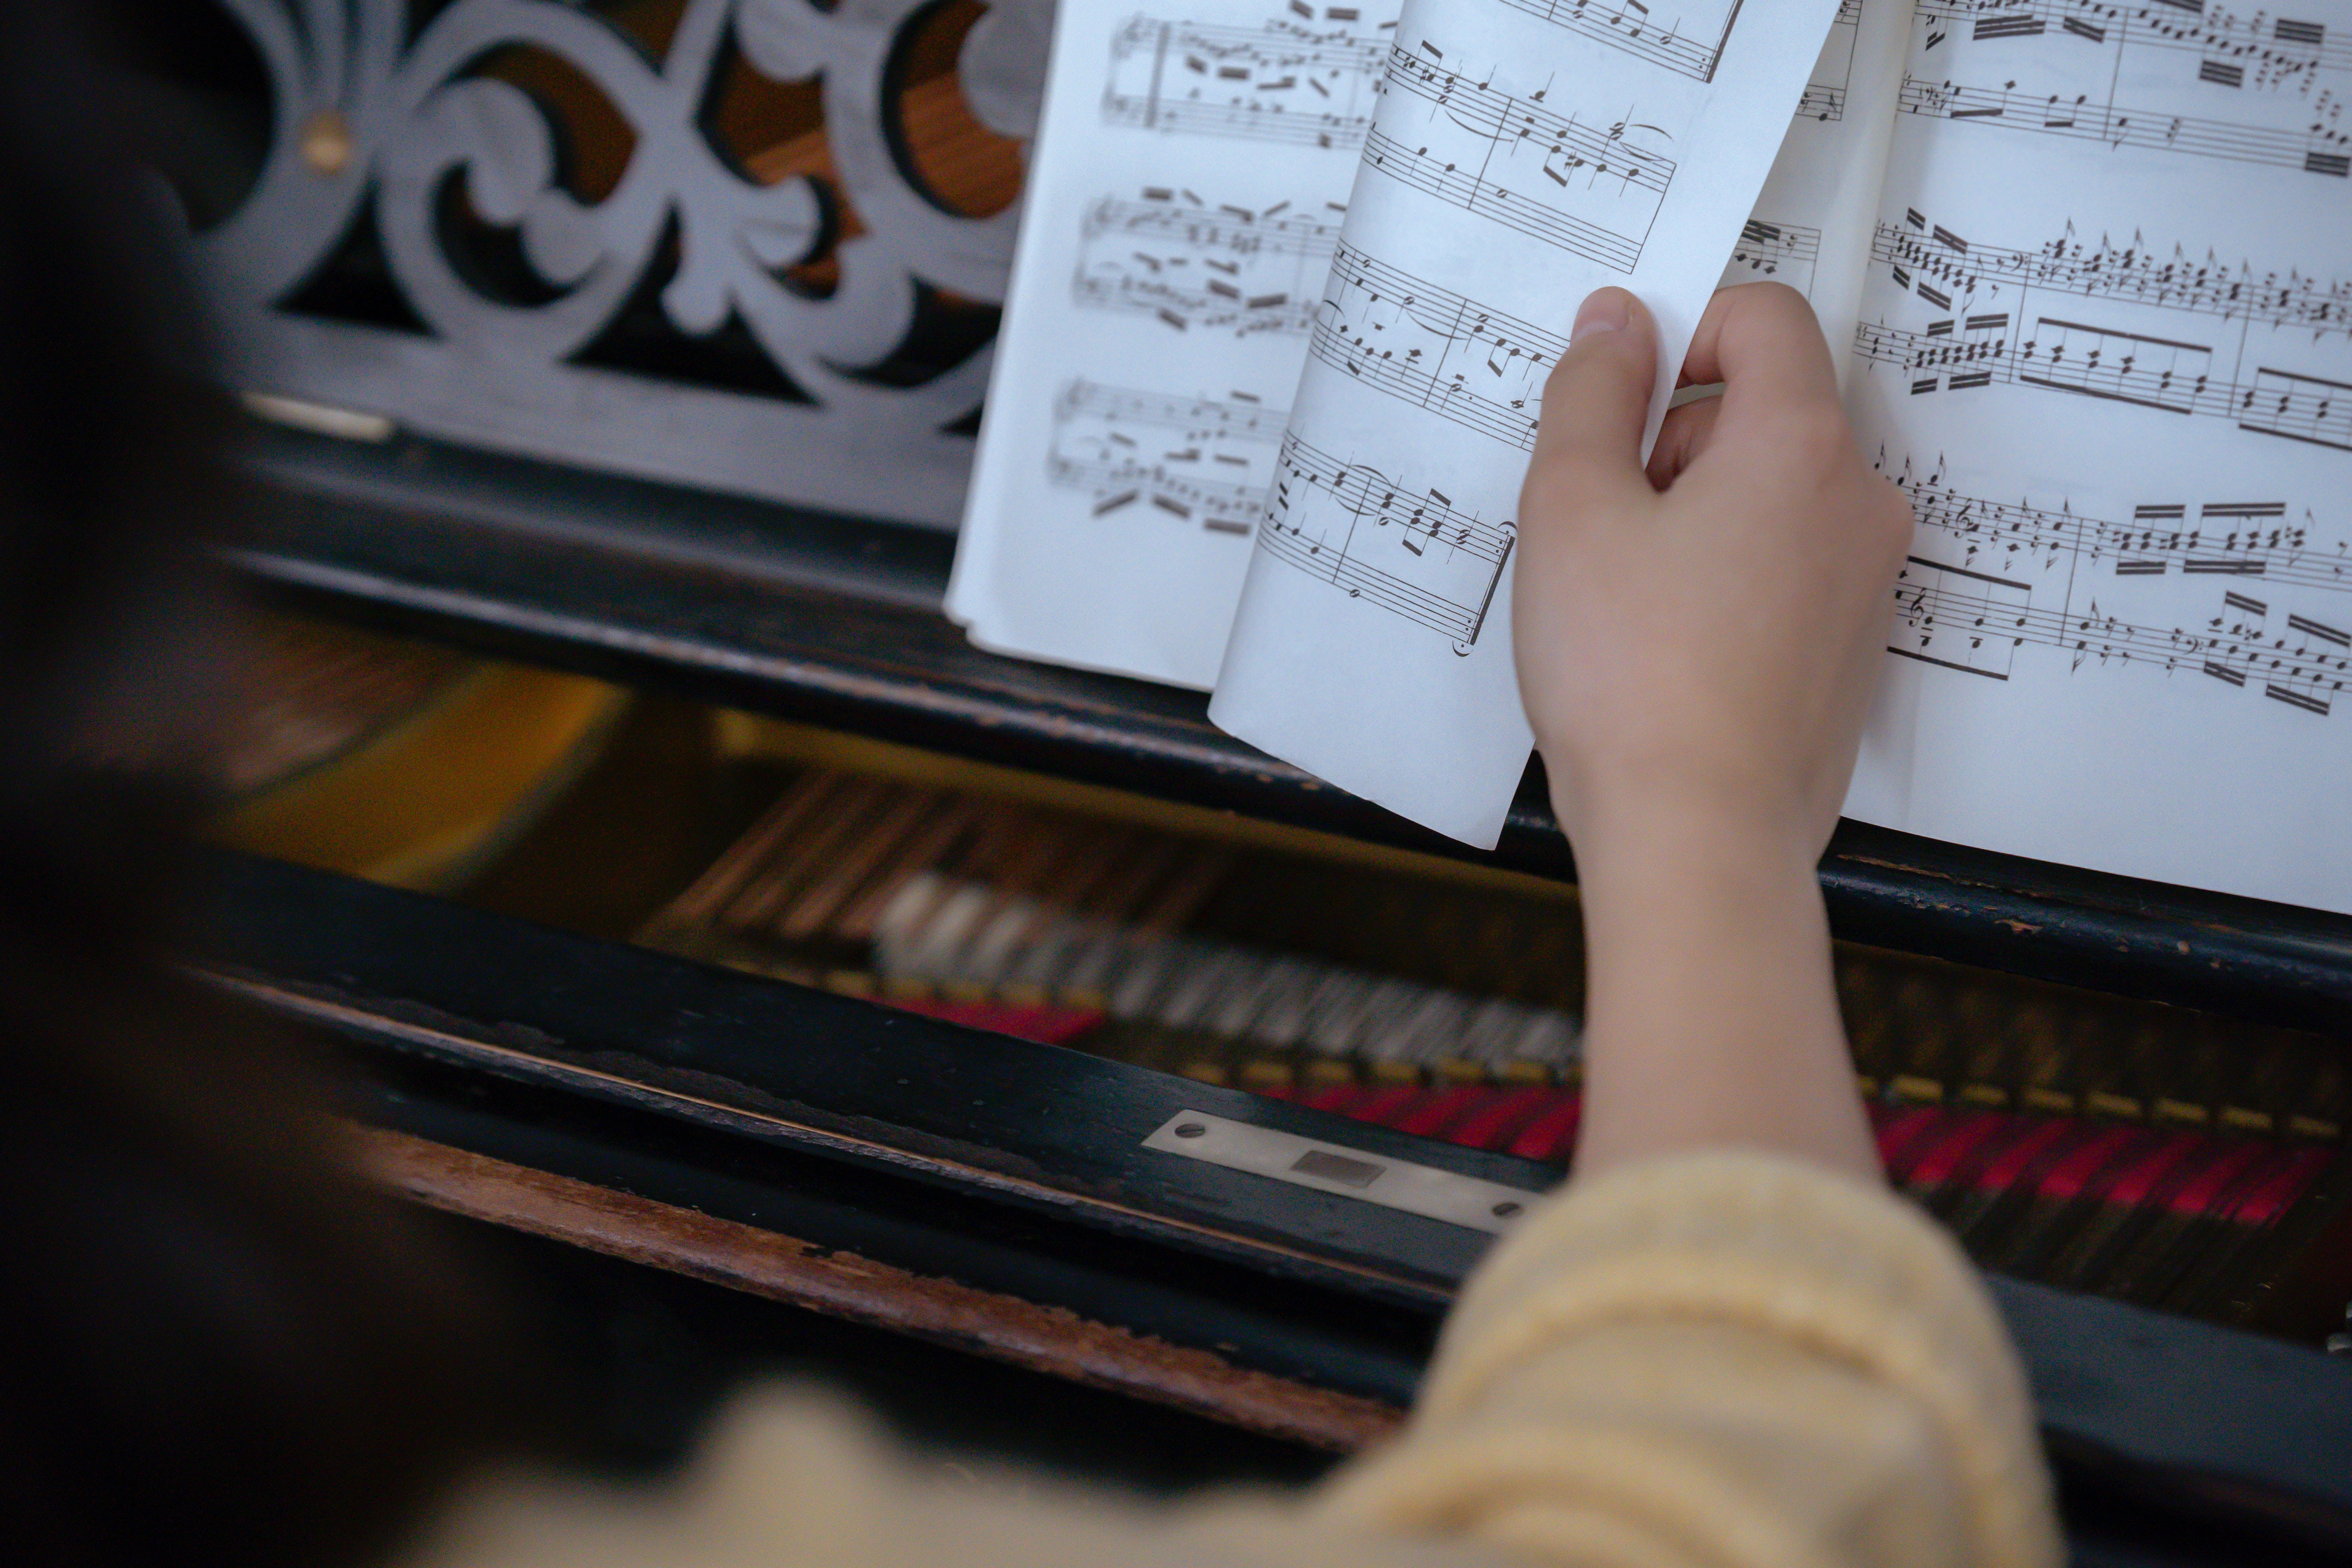 A hand turning the page of a book of music in front of a piano.